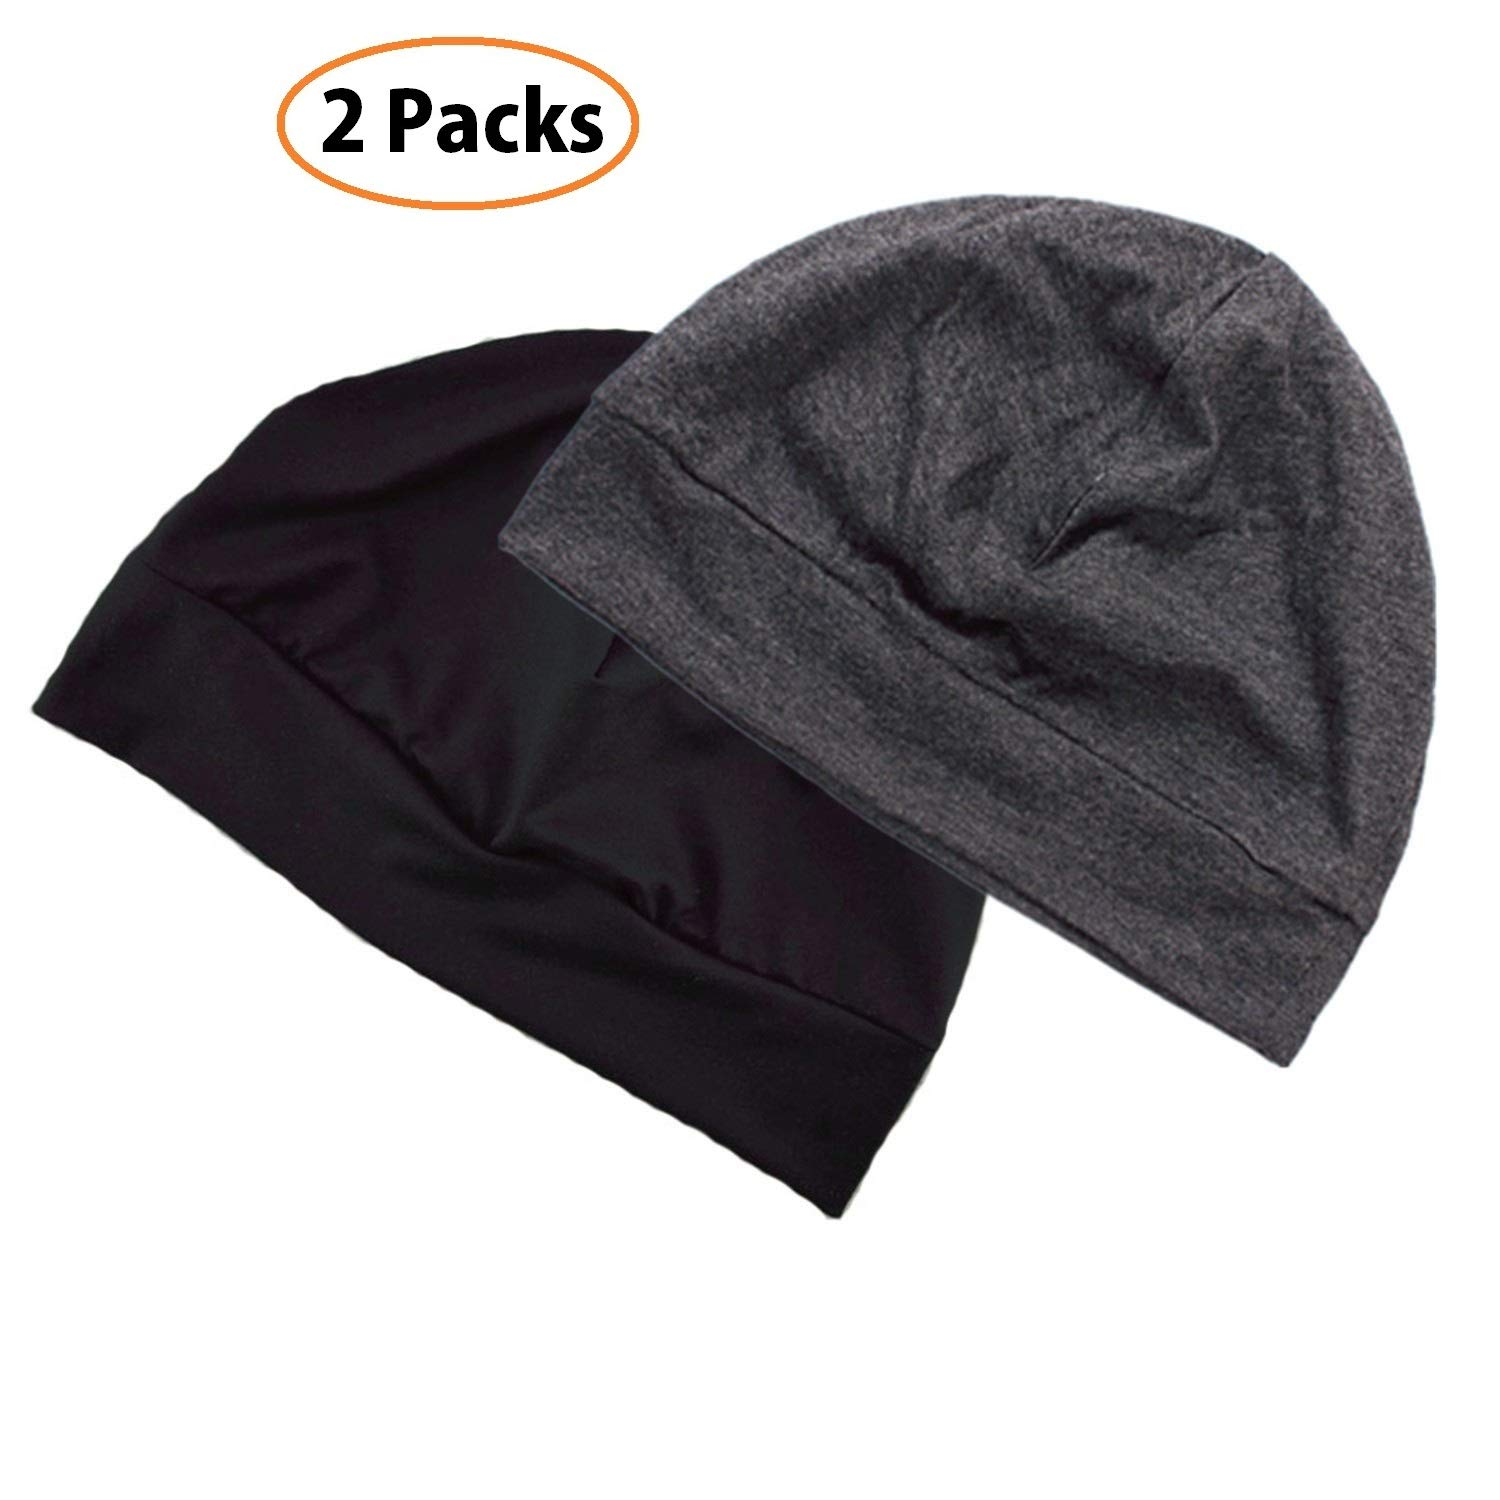 Headshion Unisex Chemo Cap 2pcs Cotton Beanie Hat Sleep Night Cap Skull Cap for Men/Women